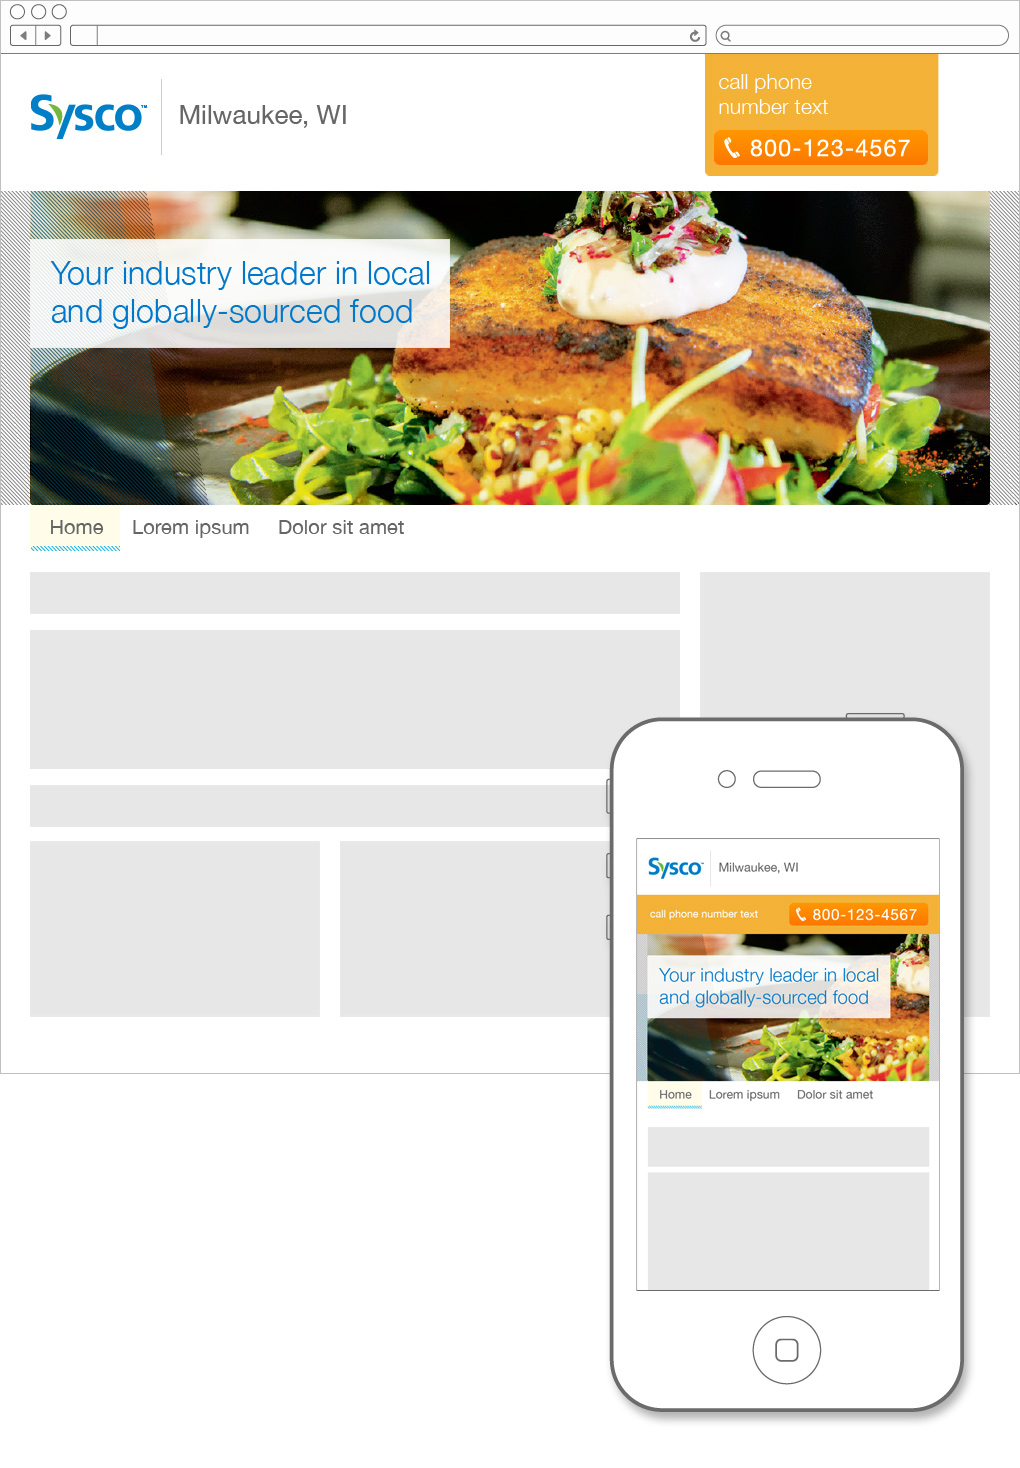 Sysco desktop and mobile website concepts